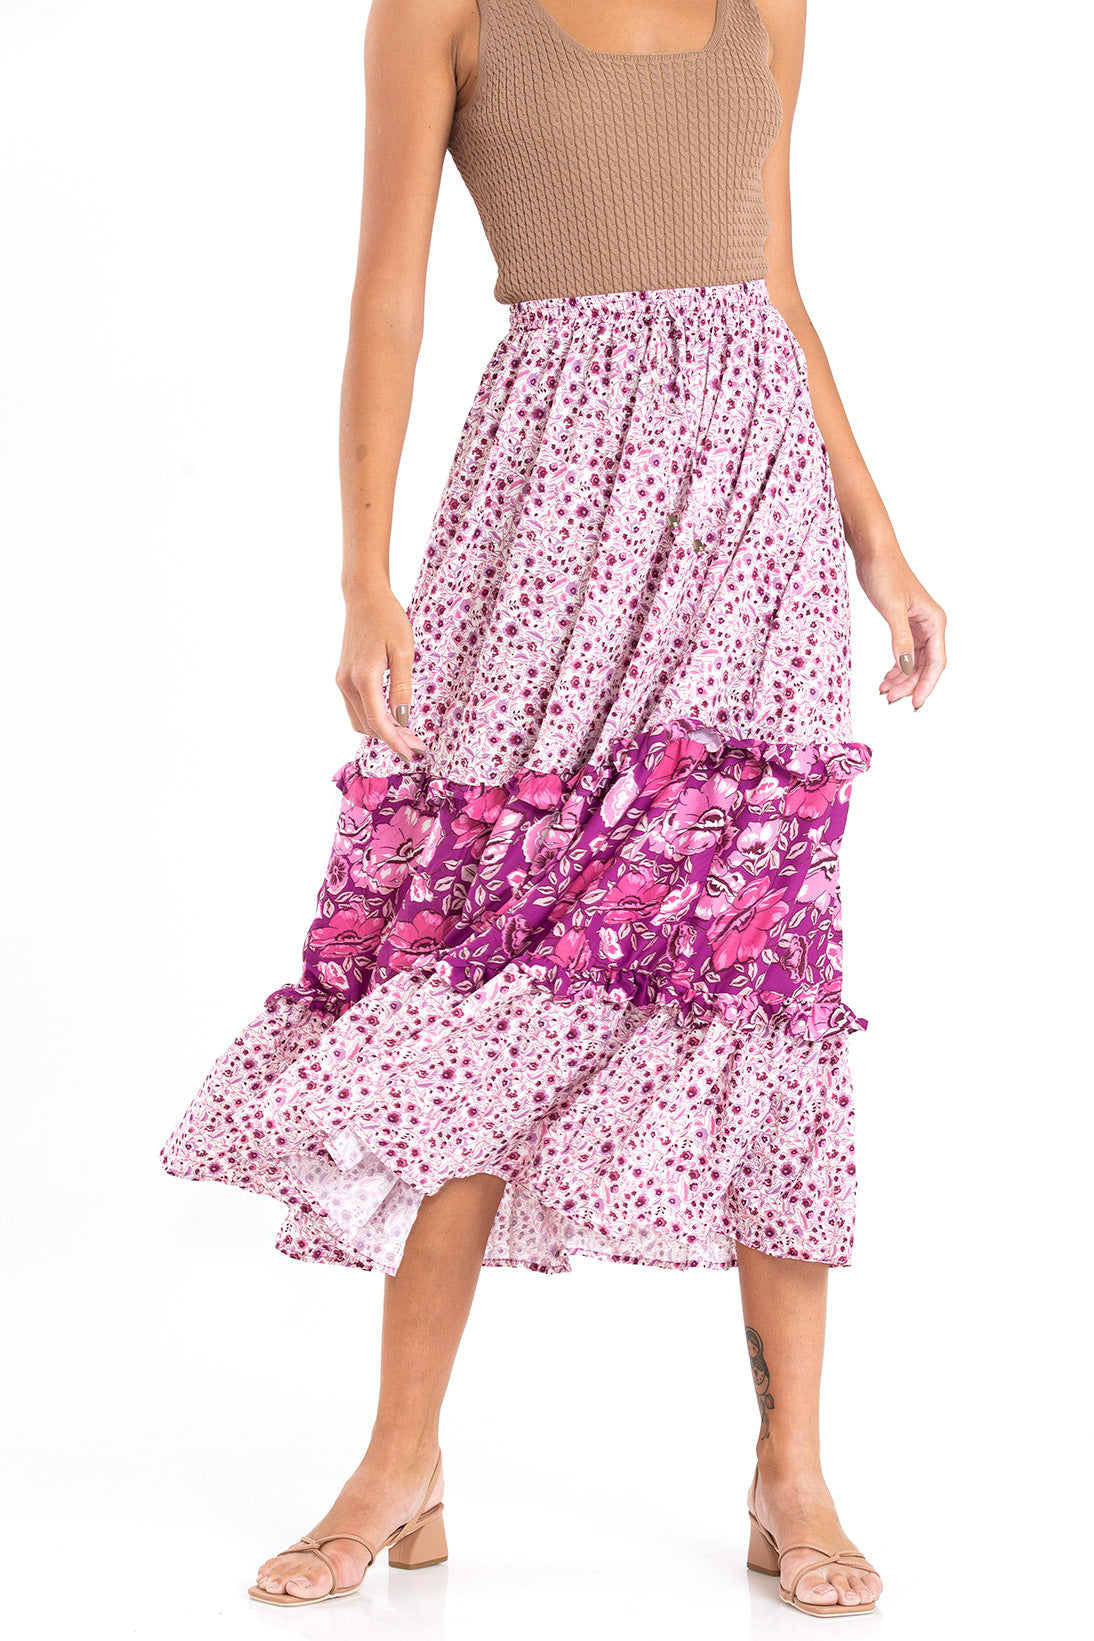 Pink Happiness Skirt